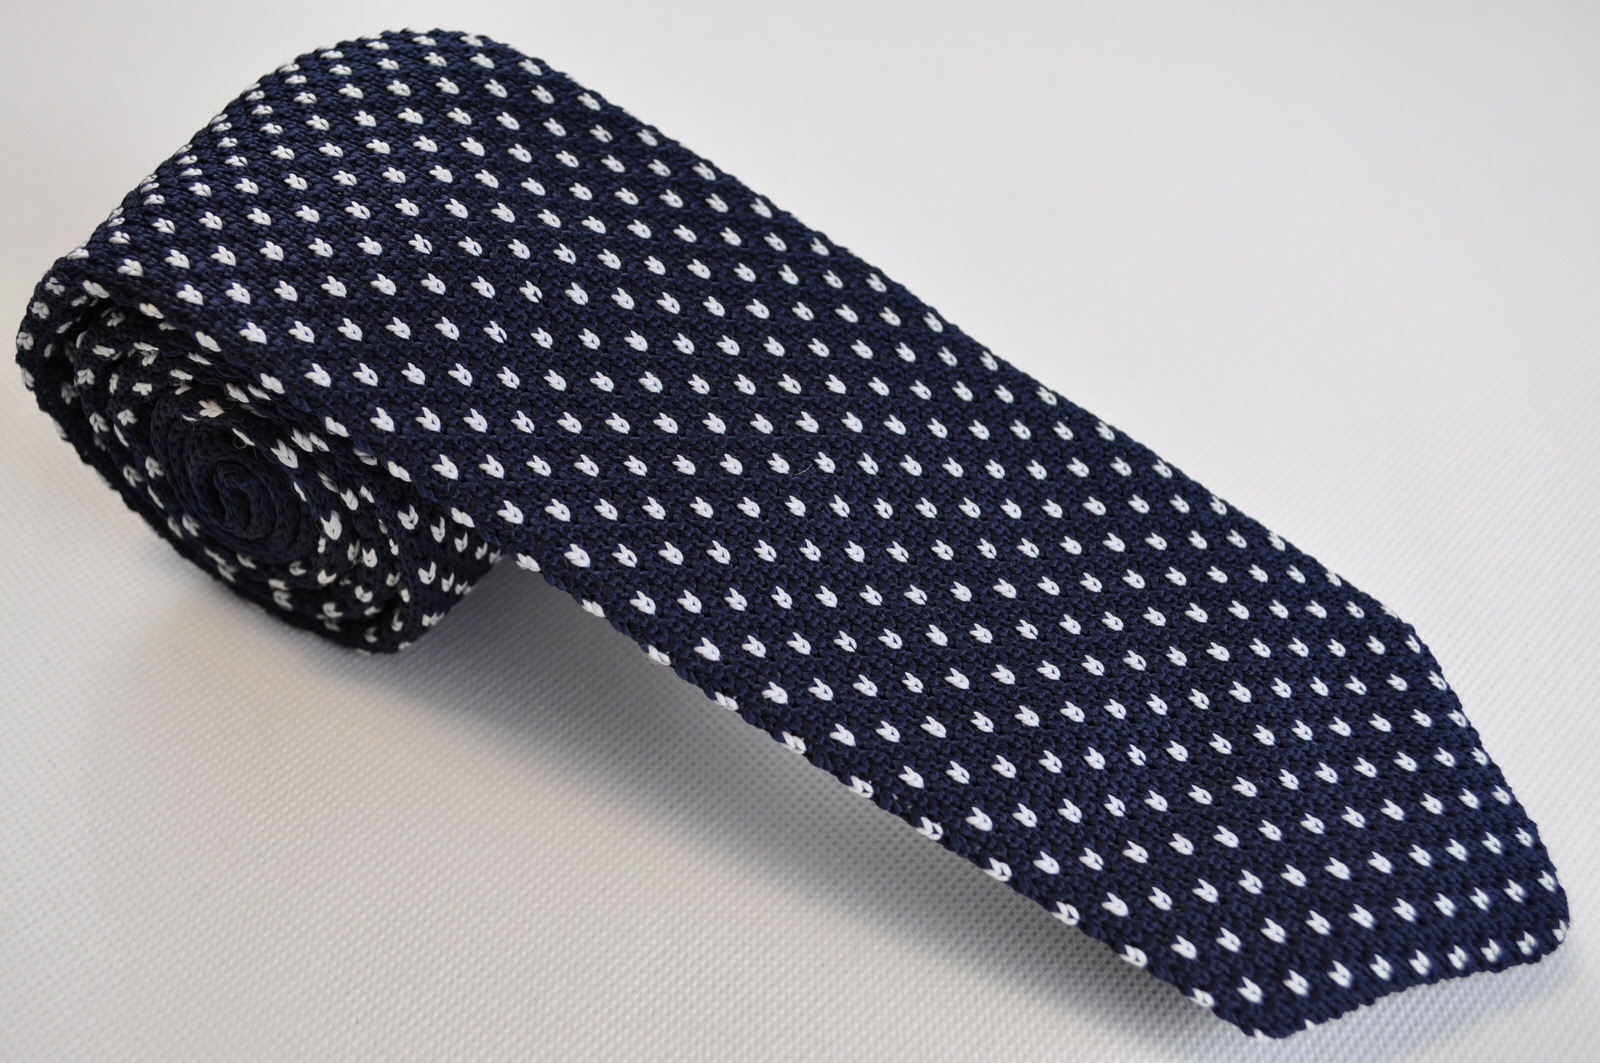 TCPA-110, Navy-White Knitted Tie | Classic Pattern Ties | Suits District